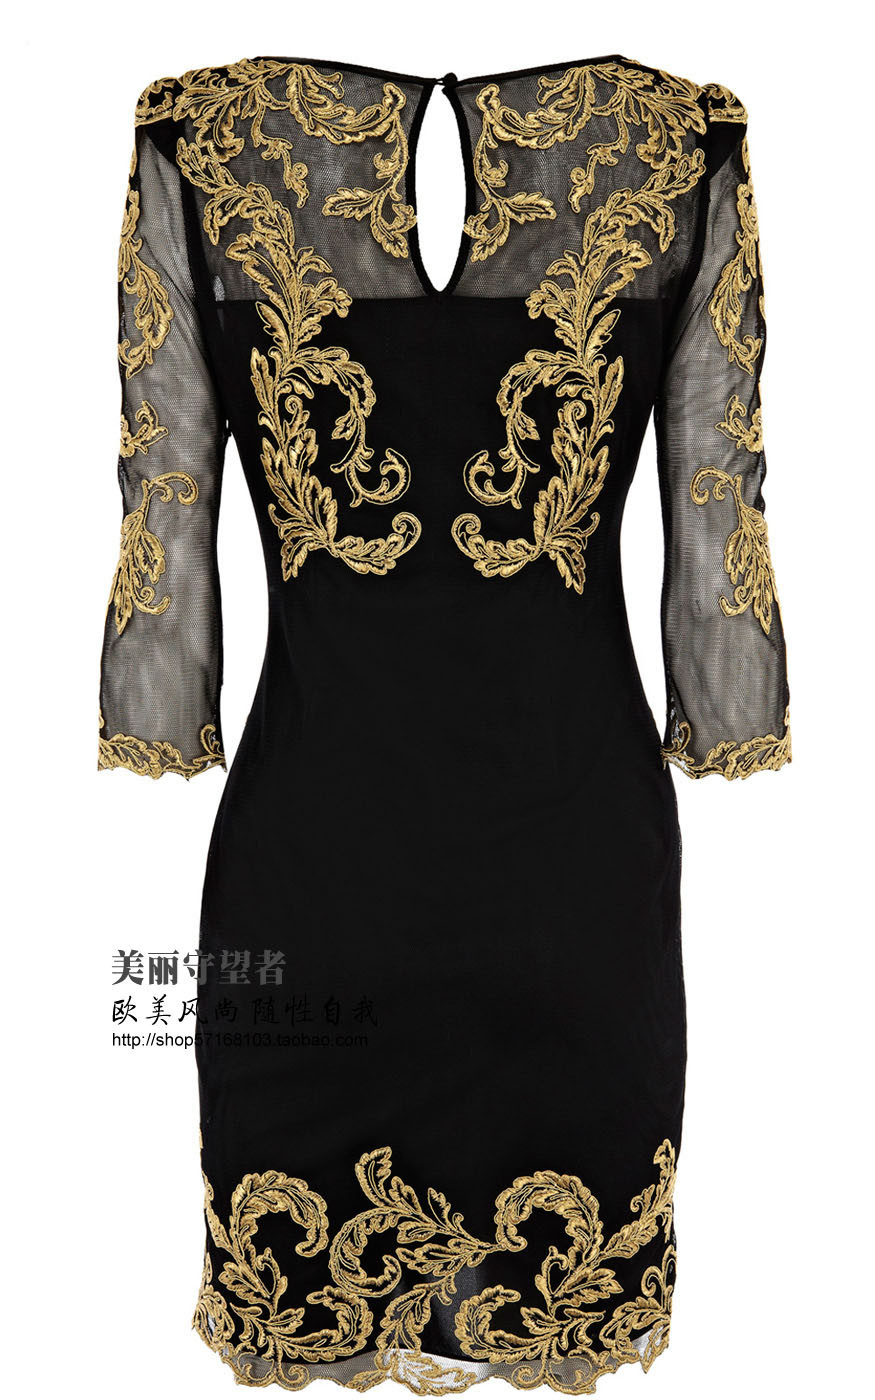 Women Dress Metallic Gold Lace Embroidered Baroque Mesh Dress Three Quarter Sleeve Dress Free shipping Plus Sizes s m l xl xxl-in Dresses from Apparel & Accessories on Aliexpress.com